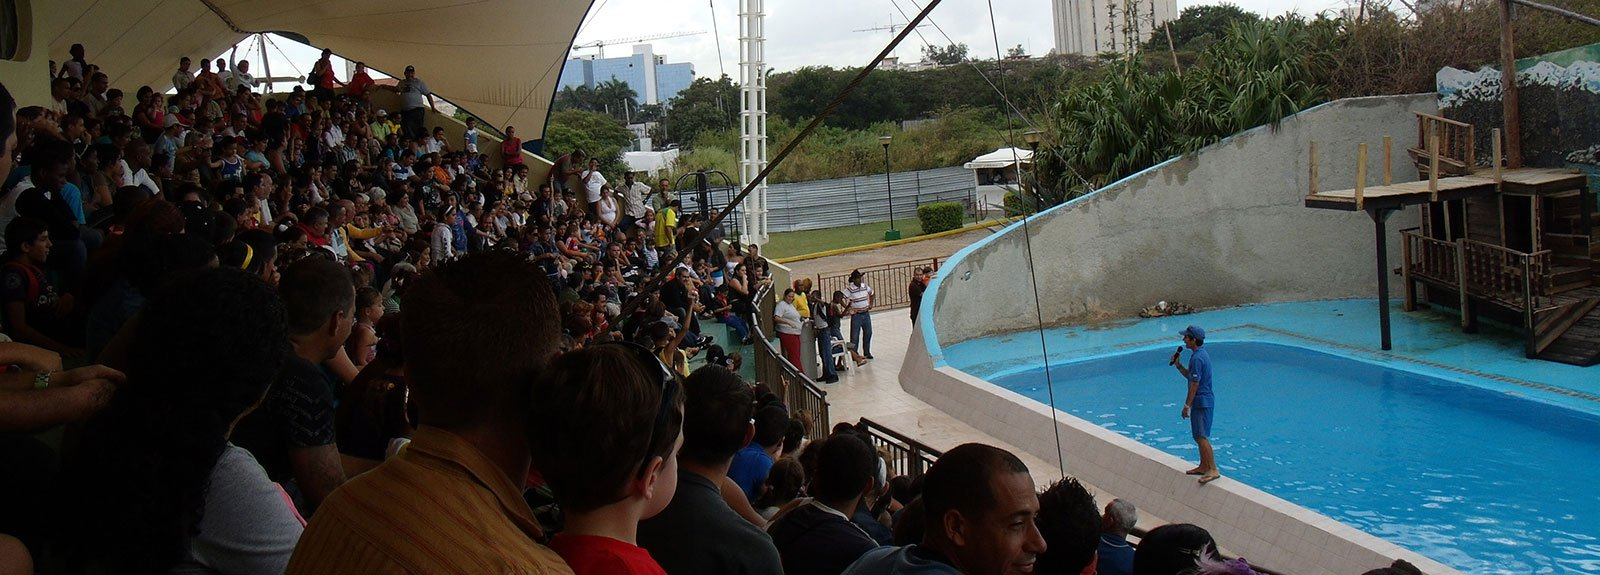 National acuarium, people in the audience of a show